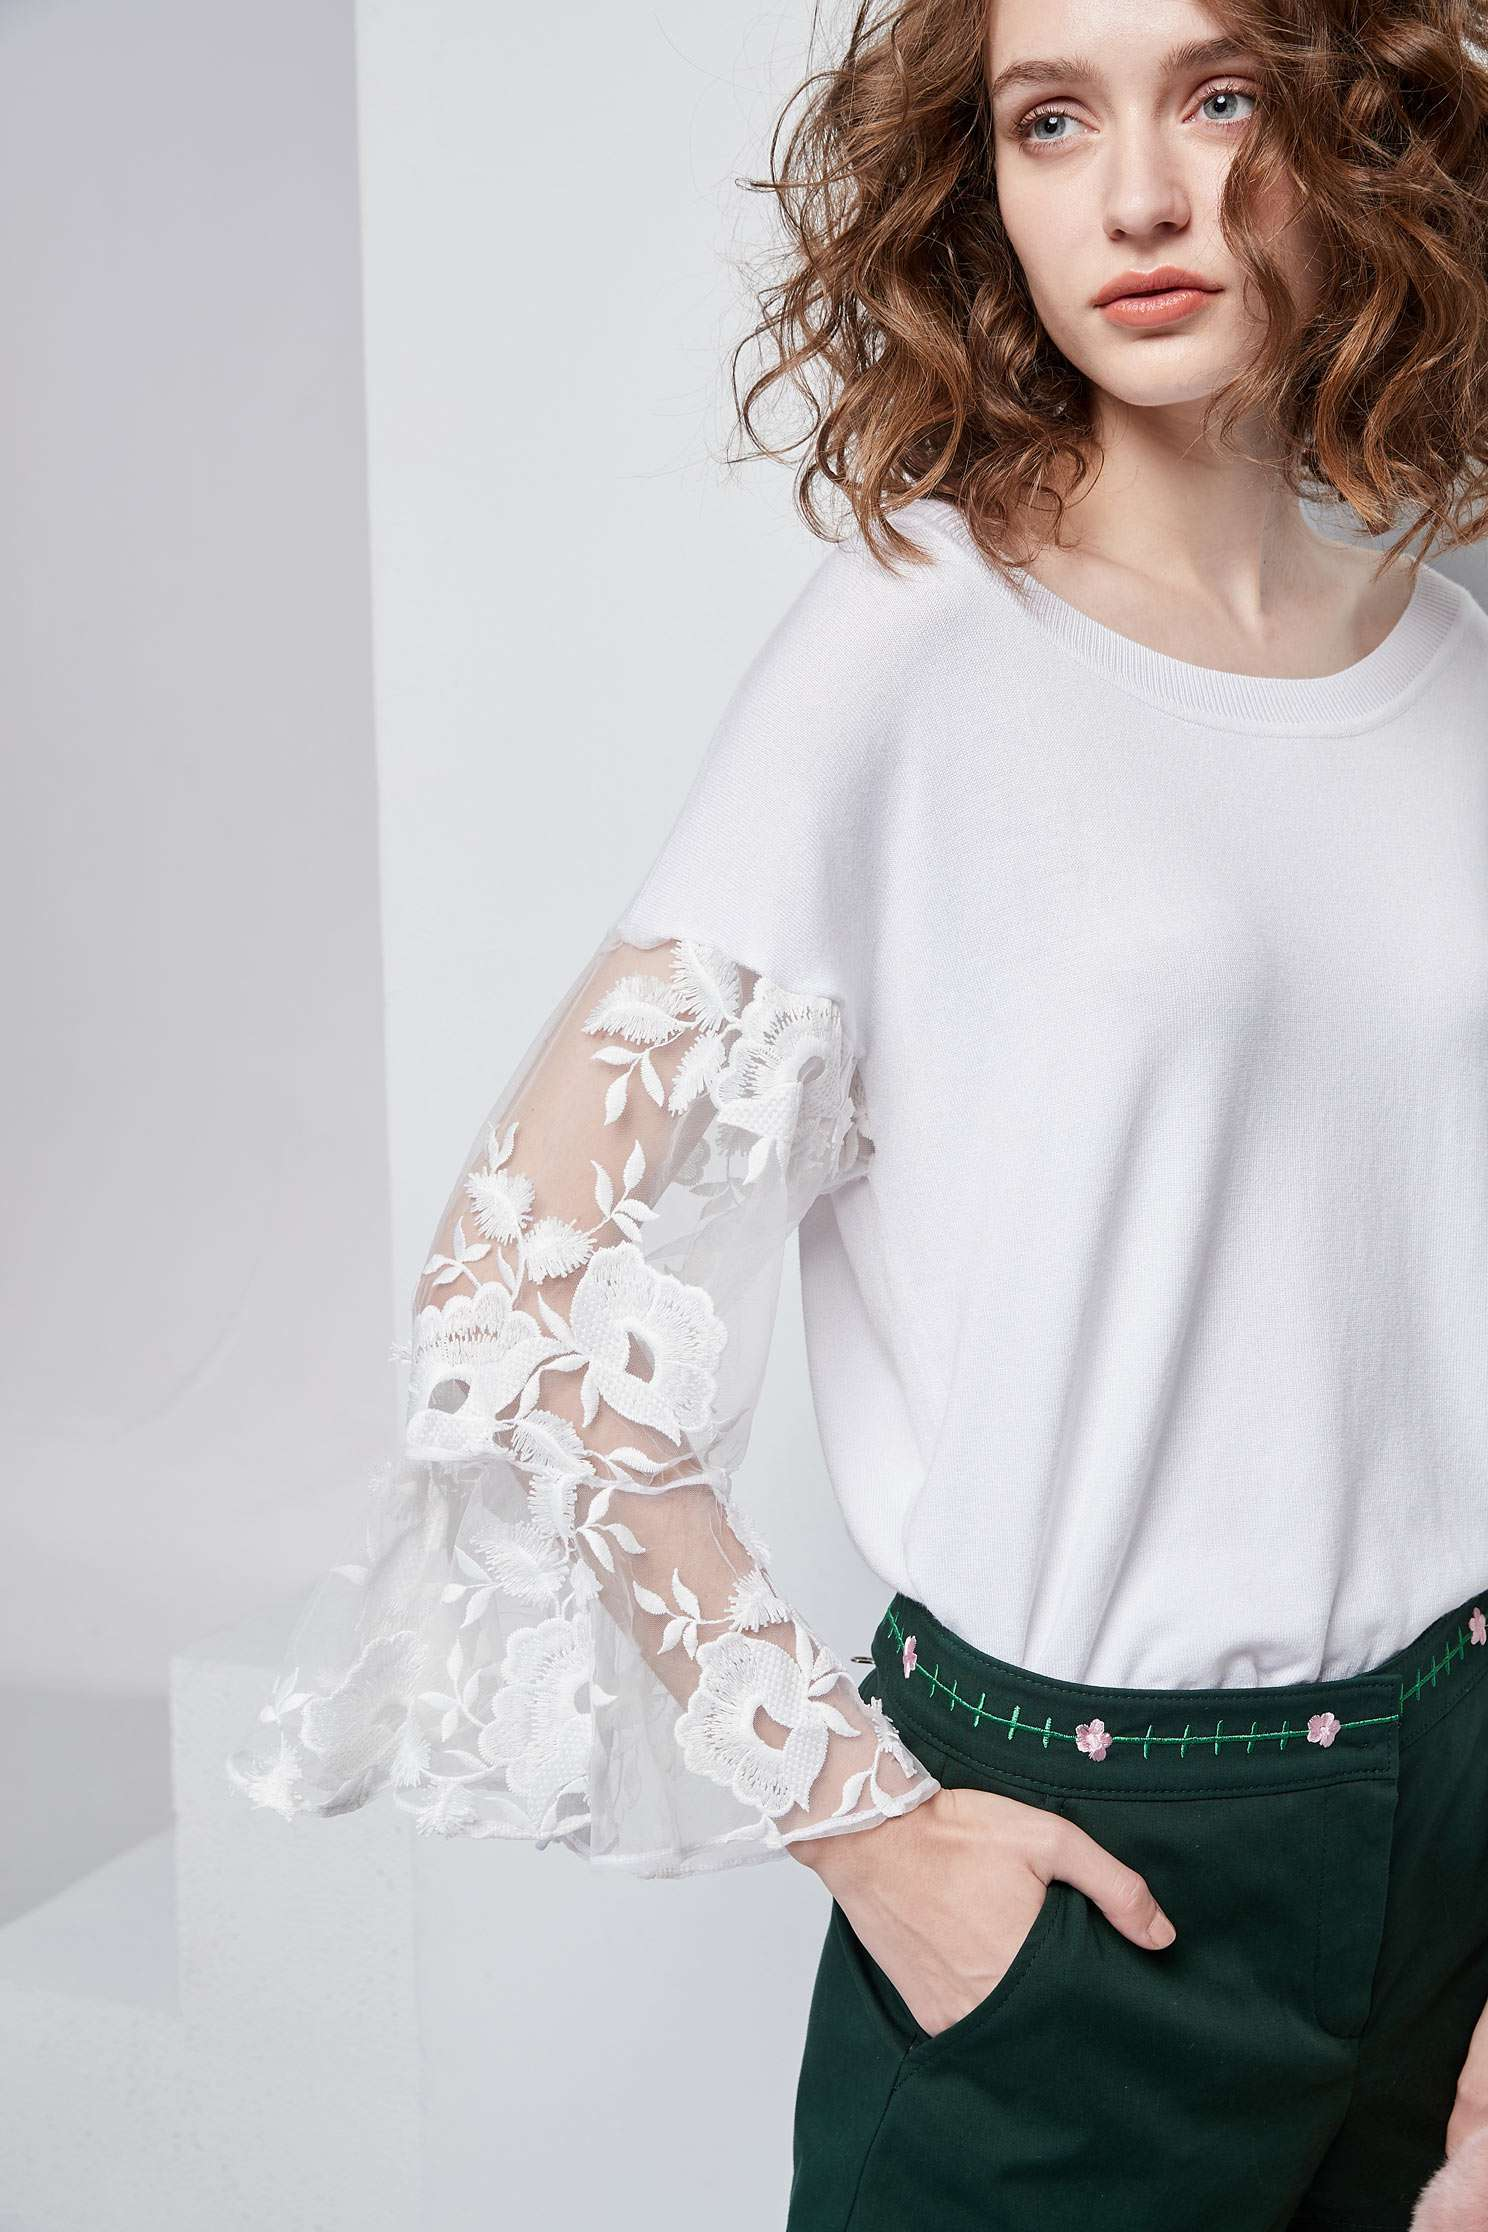 Mixed lace shirts,top,whitetop,lace,lacedtop,see-throughtop,knitting,knittedtop,knittedtop,longsleevetop,girlfriendsspringtour